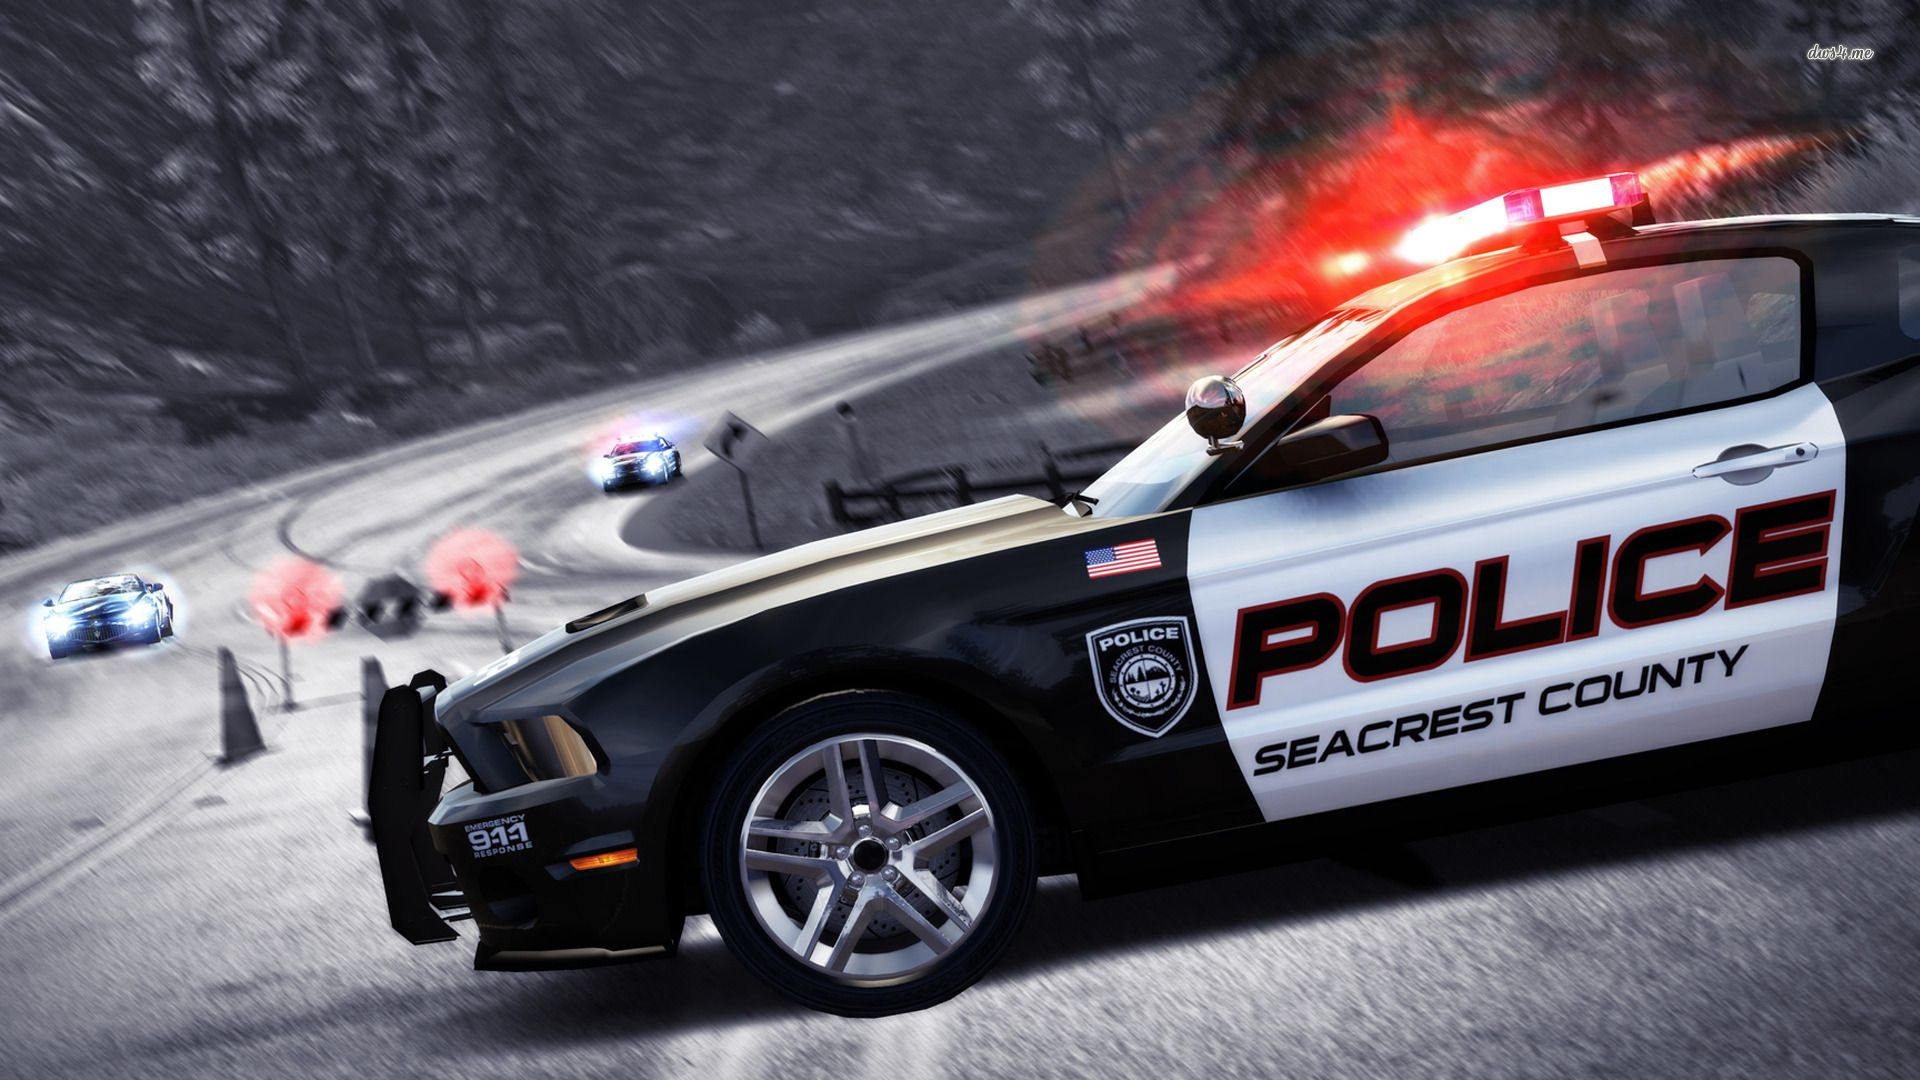 need for speed hot pursuit police car wallpaper love and respect our cops pinterest. Black Bedroom Furniture Sets. Home Design Ideas